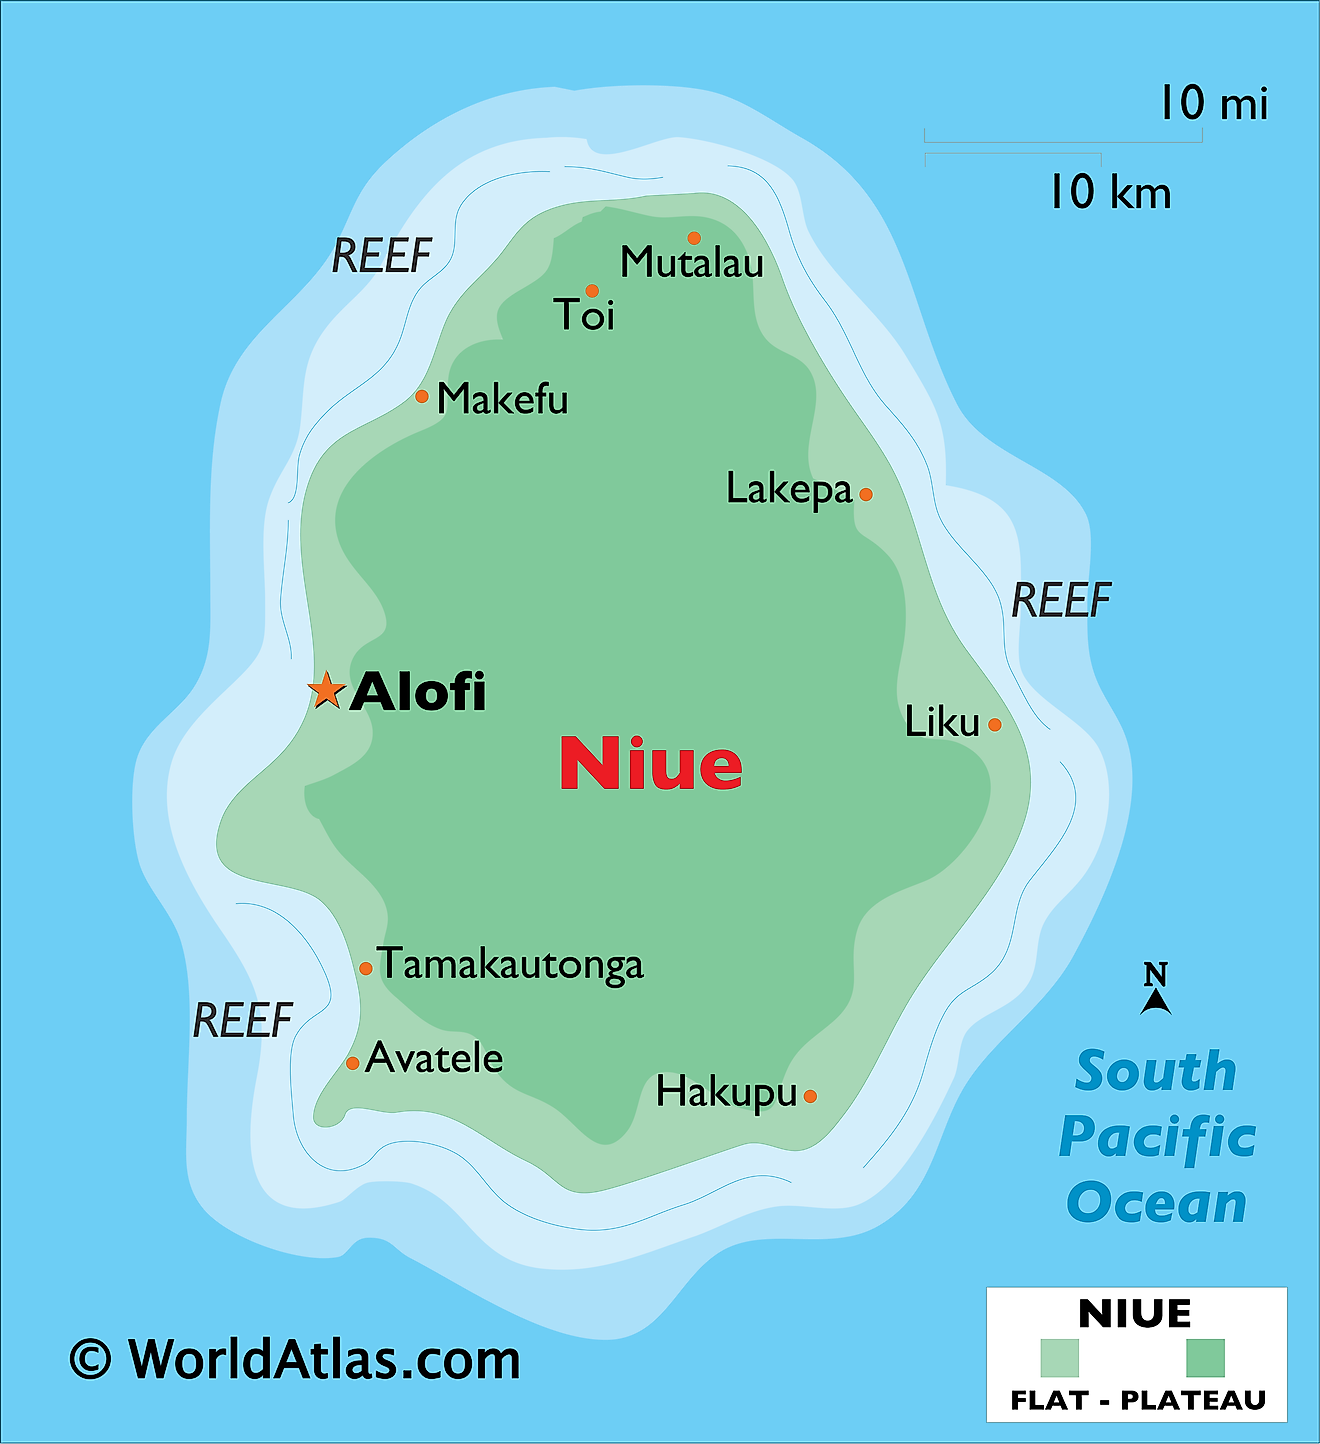 Physical Map of Niue showing relief, important settlements, etc.